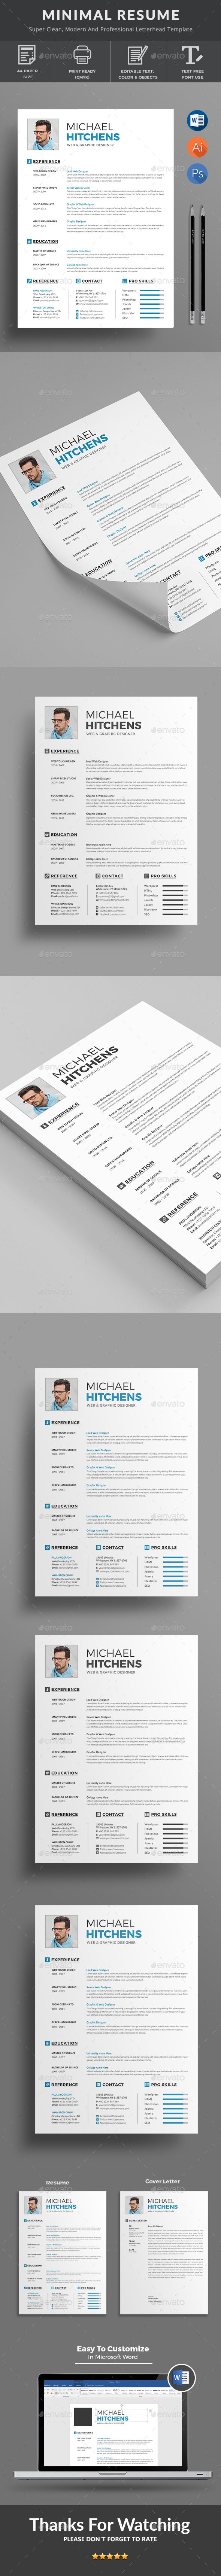 #Resume - Resumes #Stationery Download here: https://graphicriver.net/item/resume/19698912?ref=alena994